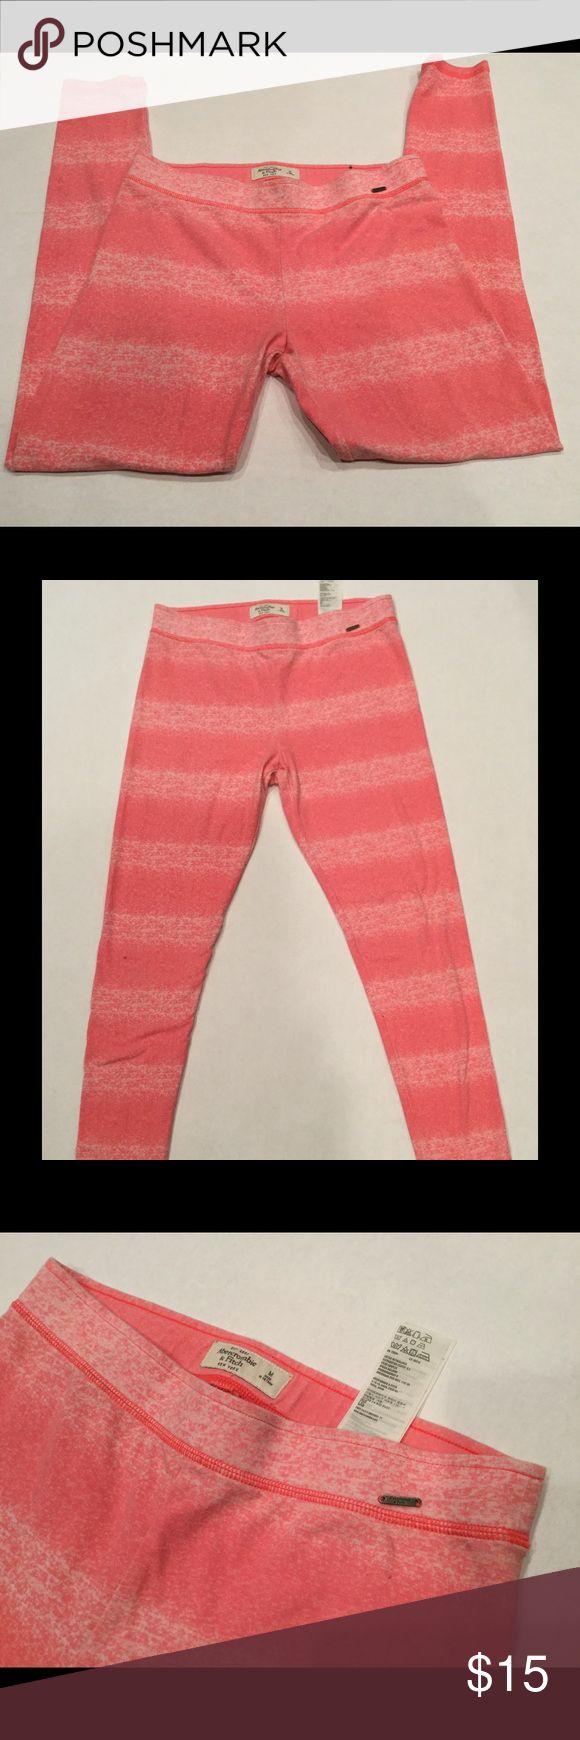 Abercrombie and Fitch Leggings Abercrombie and Fitch Leggings. Bundle listed for less ❤️📦 pen mark 4th photo📸 materials listen, very comfortable, worn twice. So cute 💕 Pants Leggings